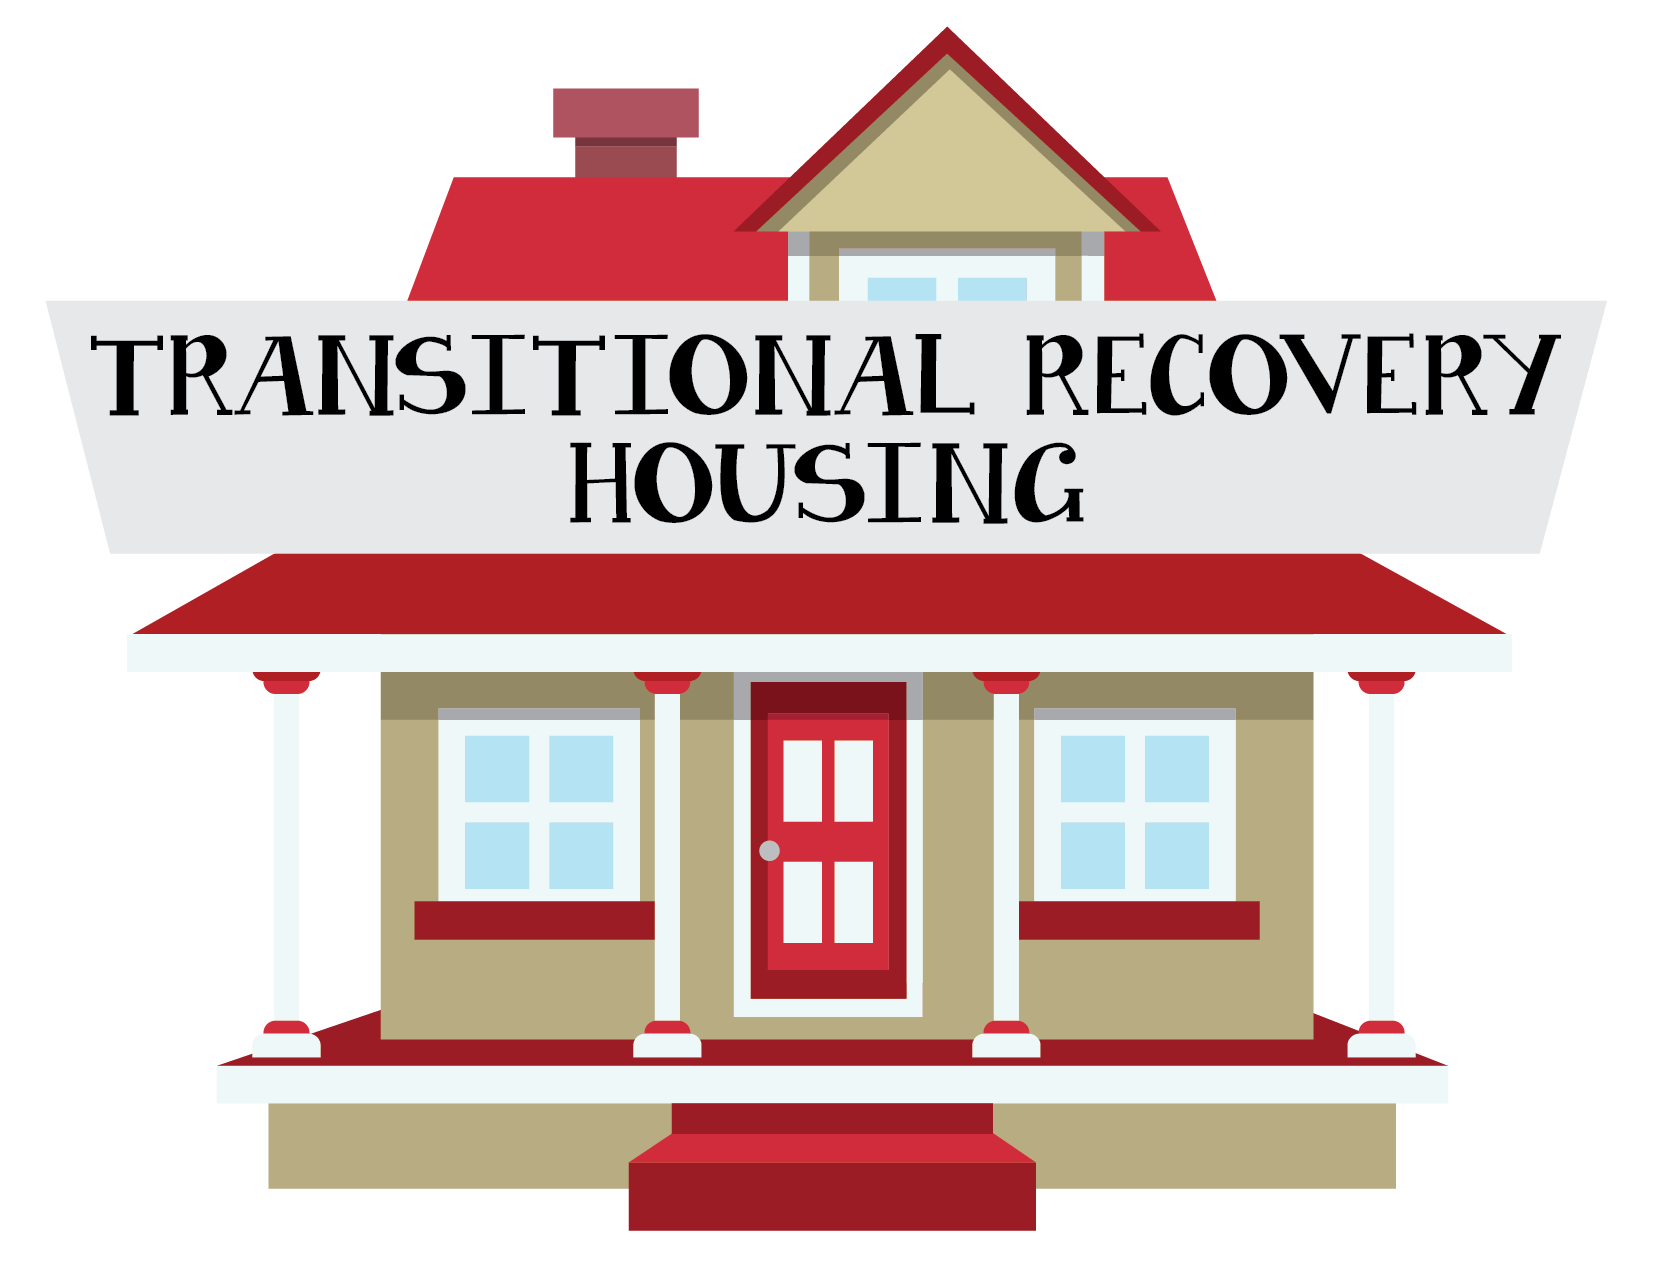 House rent clipart clip art freeuse stock Transitional & Recovery Housing | Lend A Hand Services clip art freeuse stock